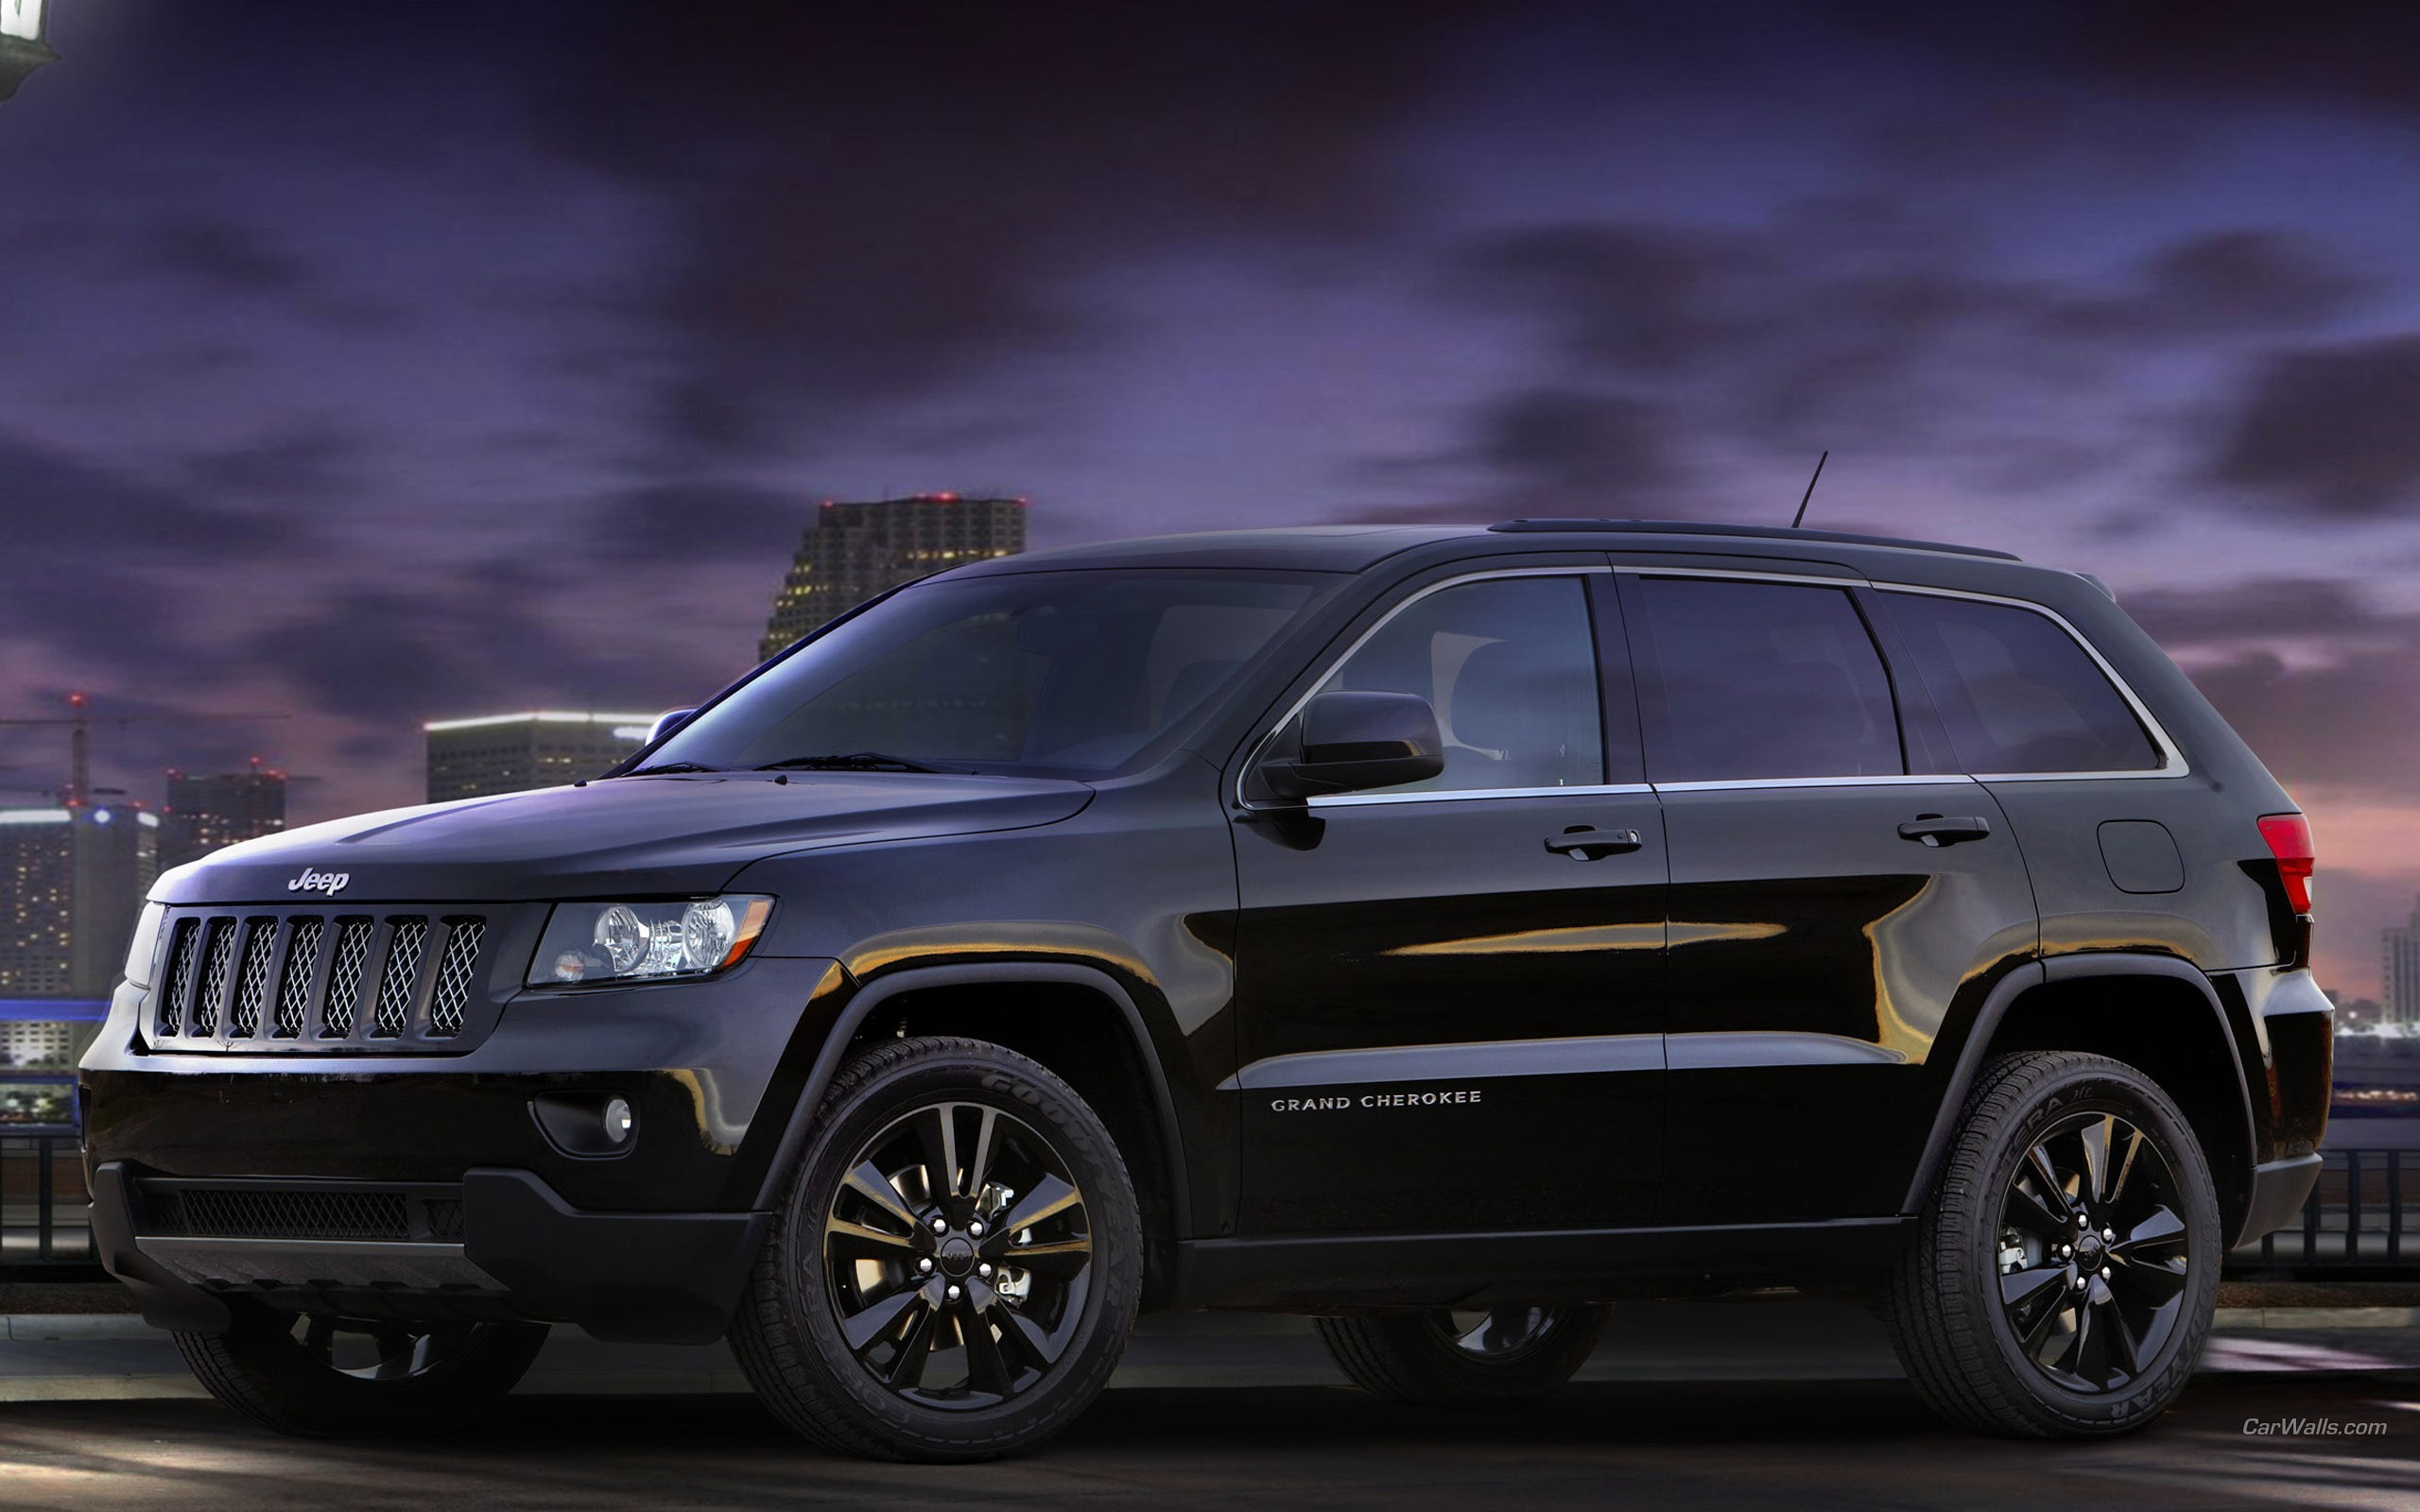 Grand Cherokee Jeep Cars Concept Art Wallpaper